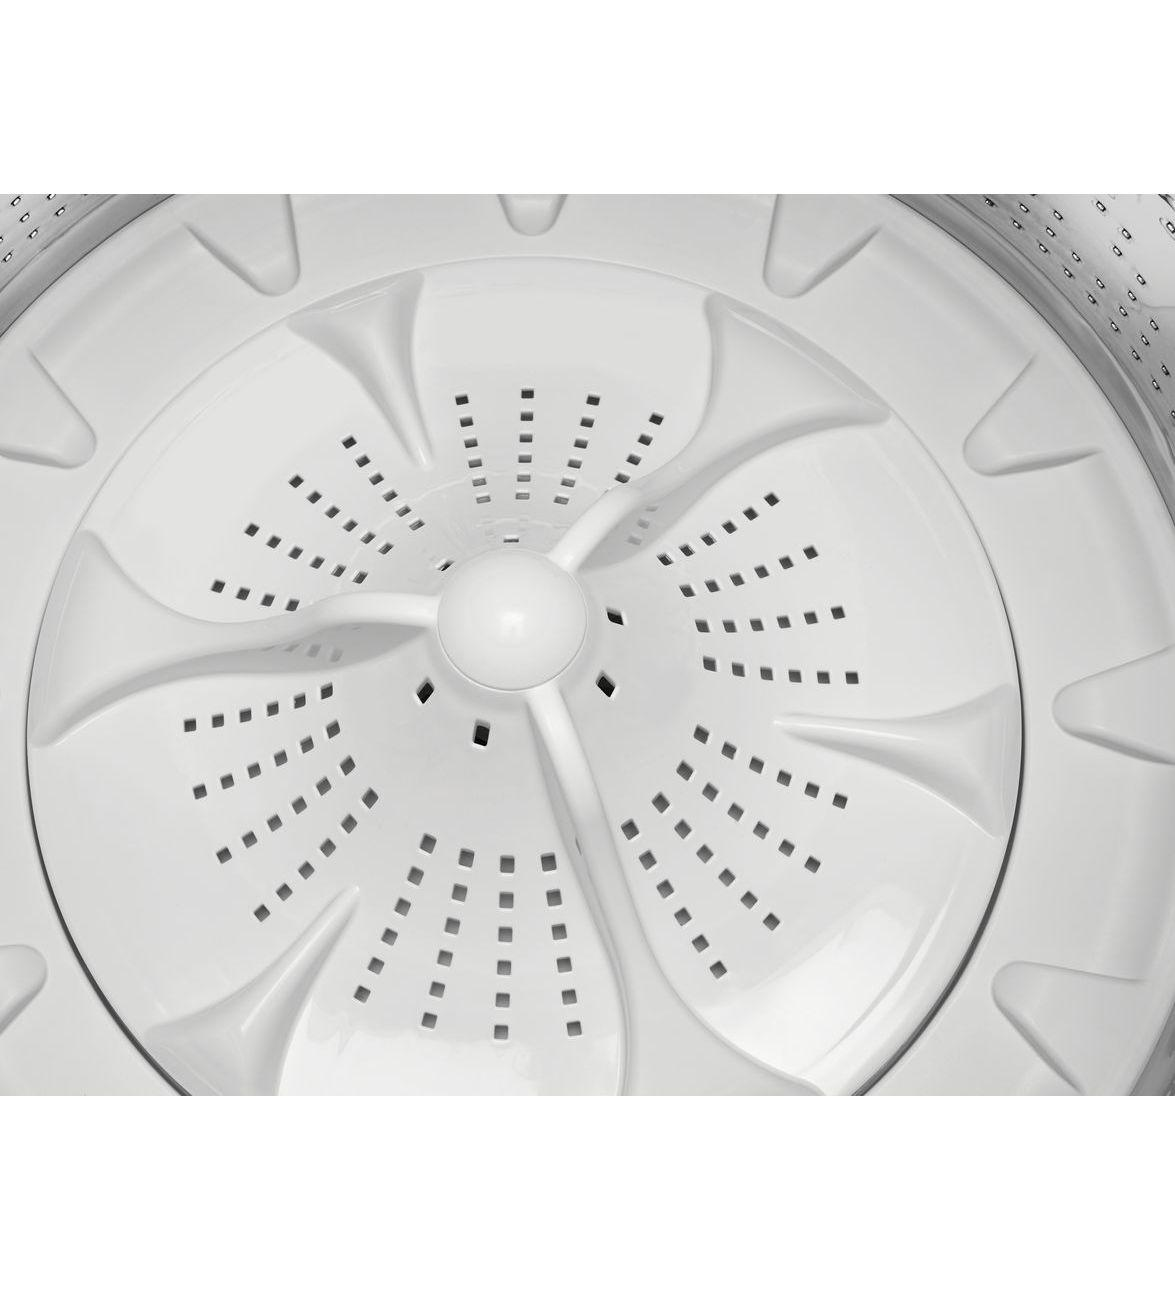 """Whirlpool WTW5500BW 27"""" Top-Load Washer With 3.8 Cu. Ft"""